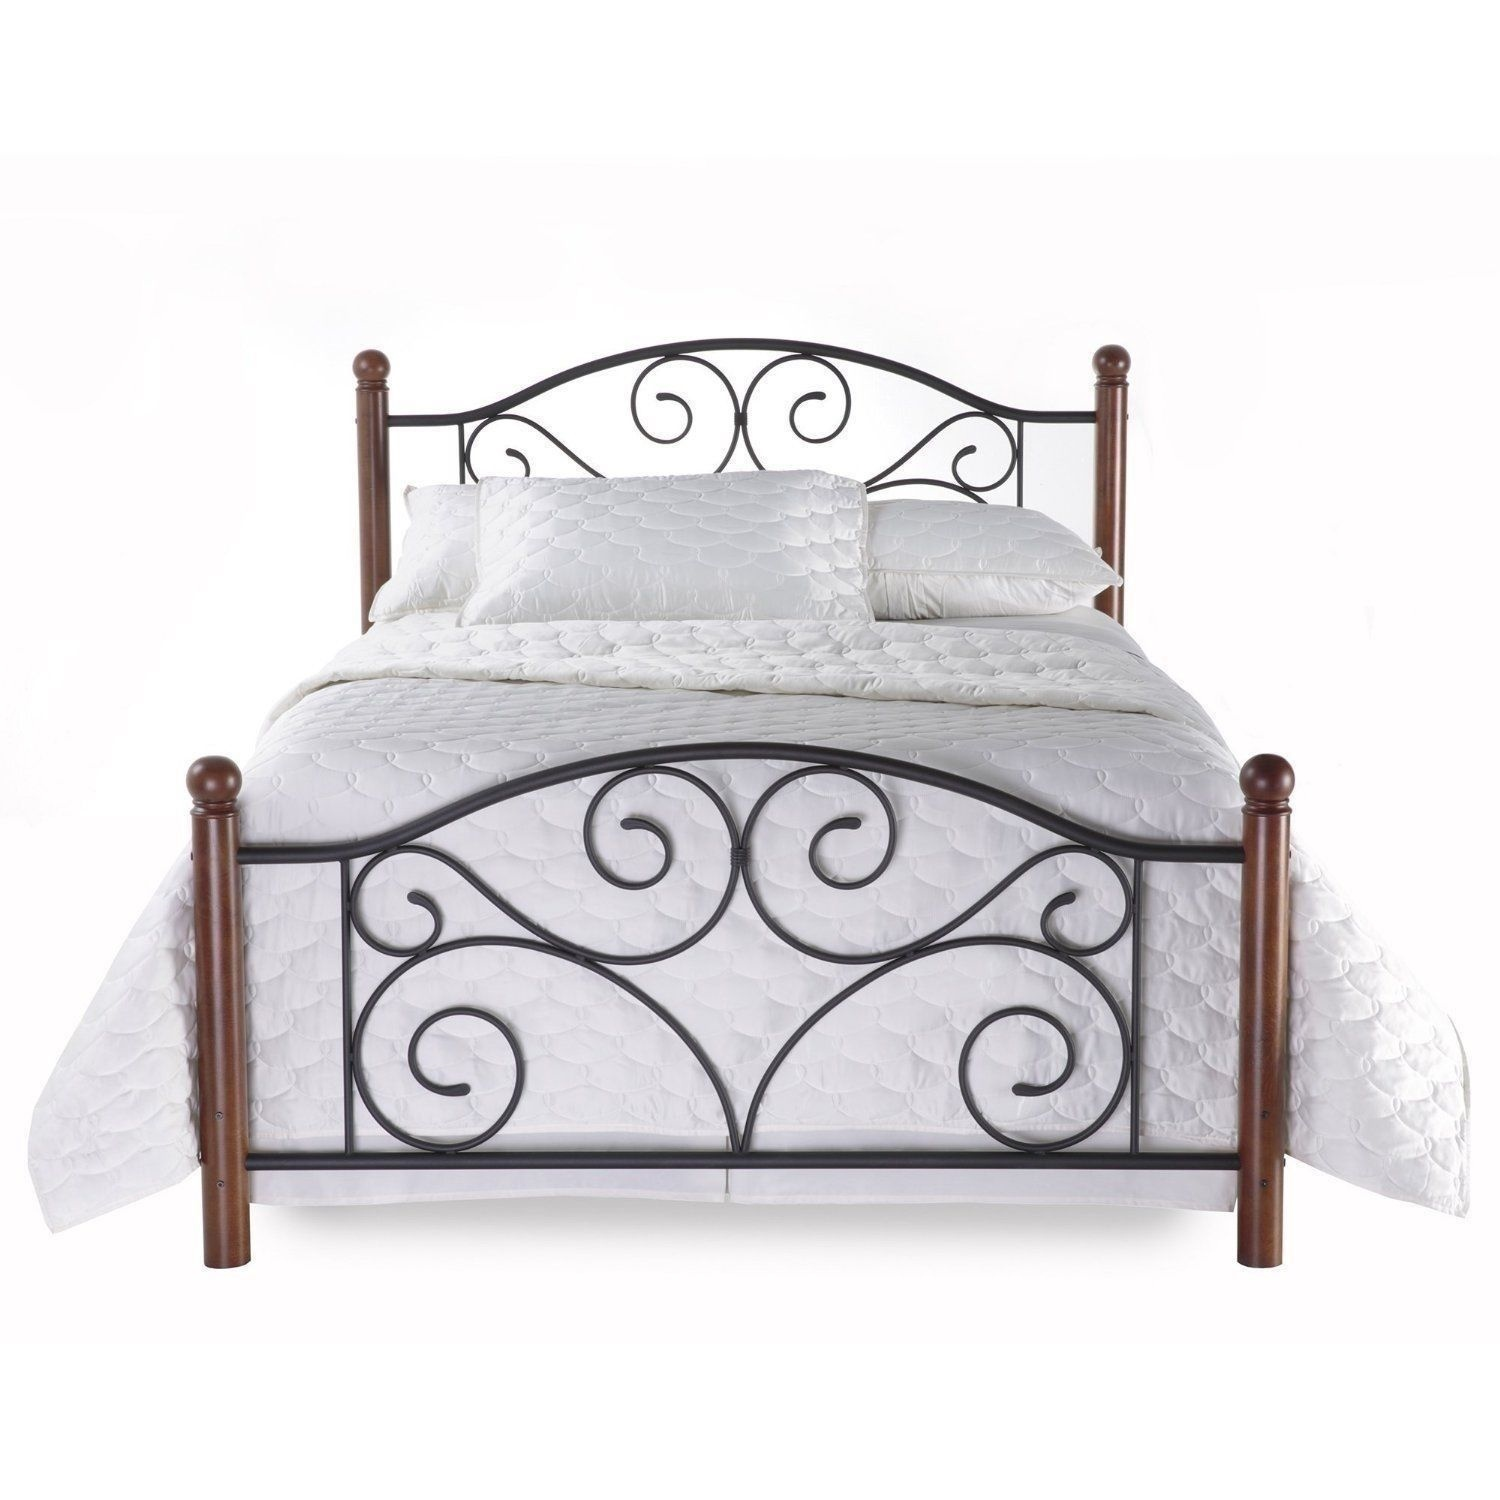 New Full Queen King Size Metal Wood Mattress Bed Frame